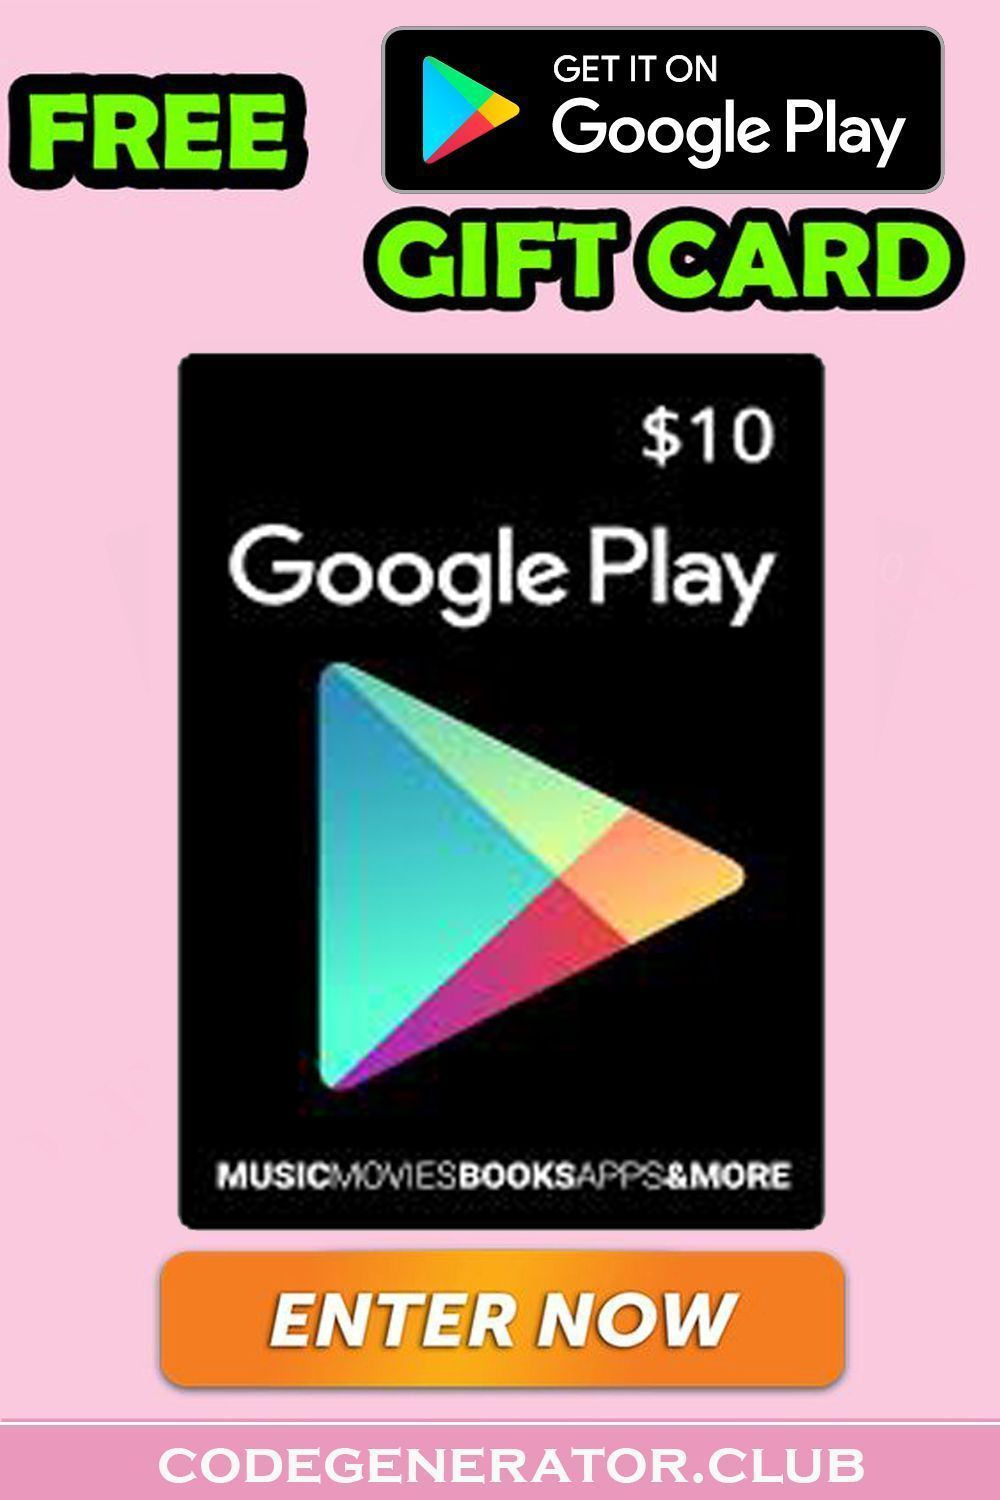 How To Get Free Google Play Gift Cards Free Google Play Gift Card Unused Code How Google Play Gift Card Free Gift Card Generator Amazon Gift Card Free